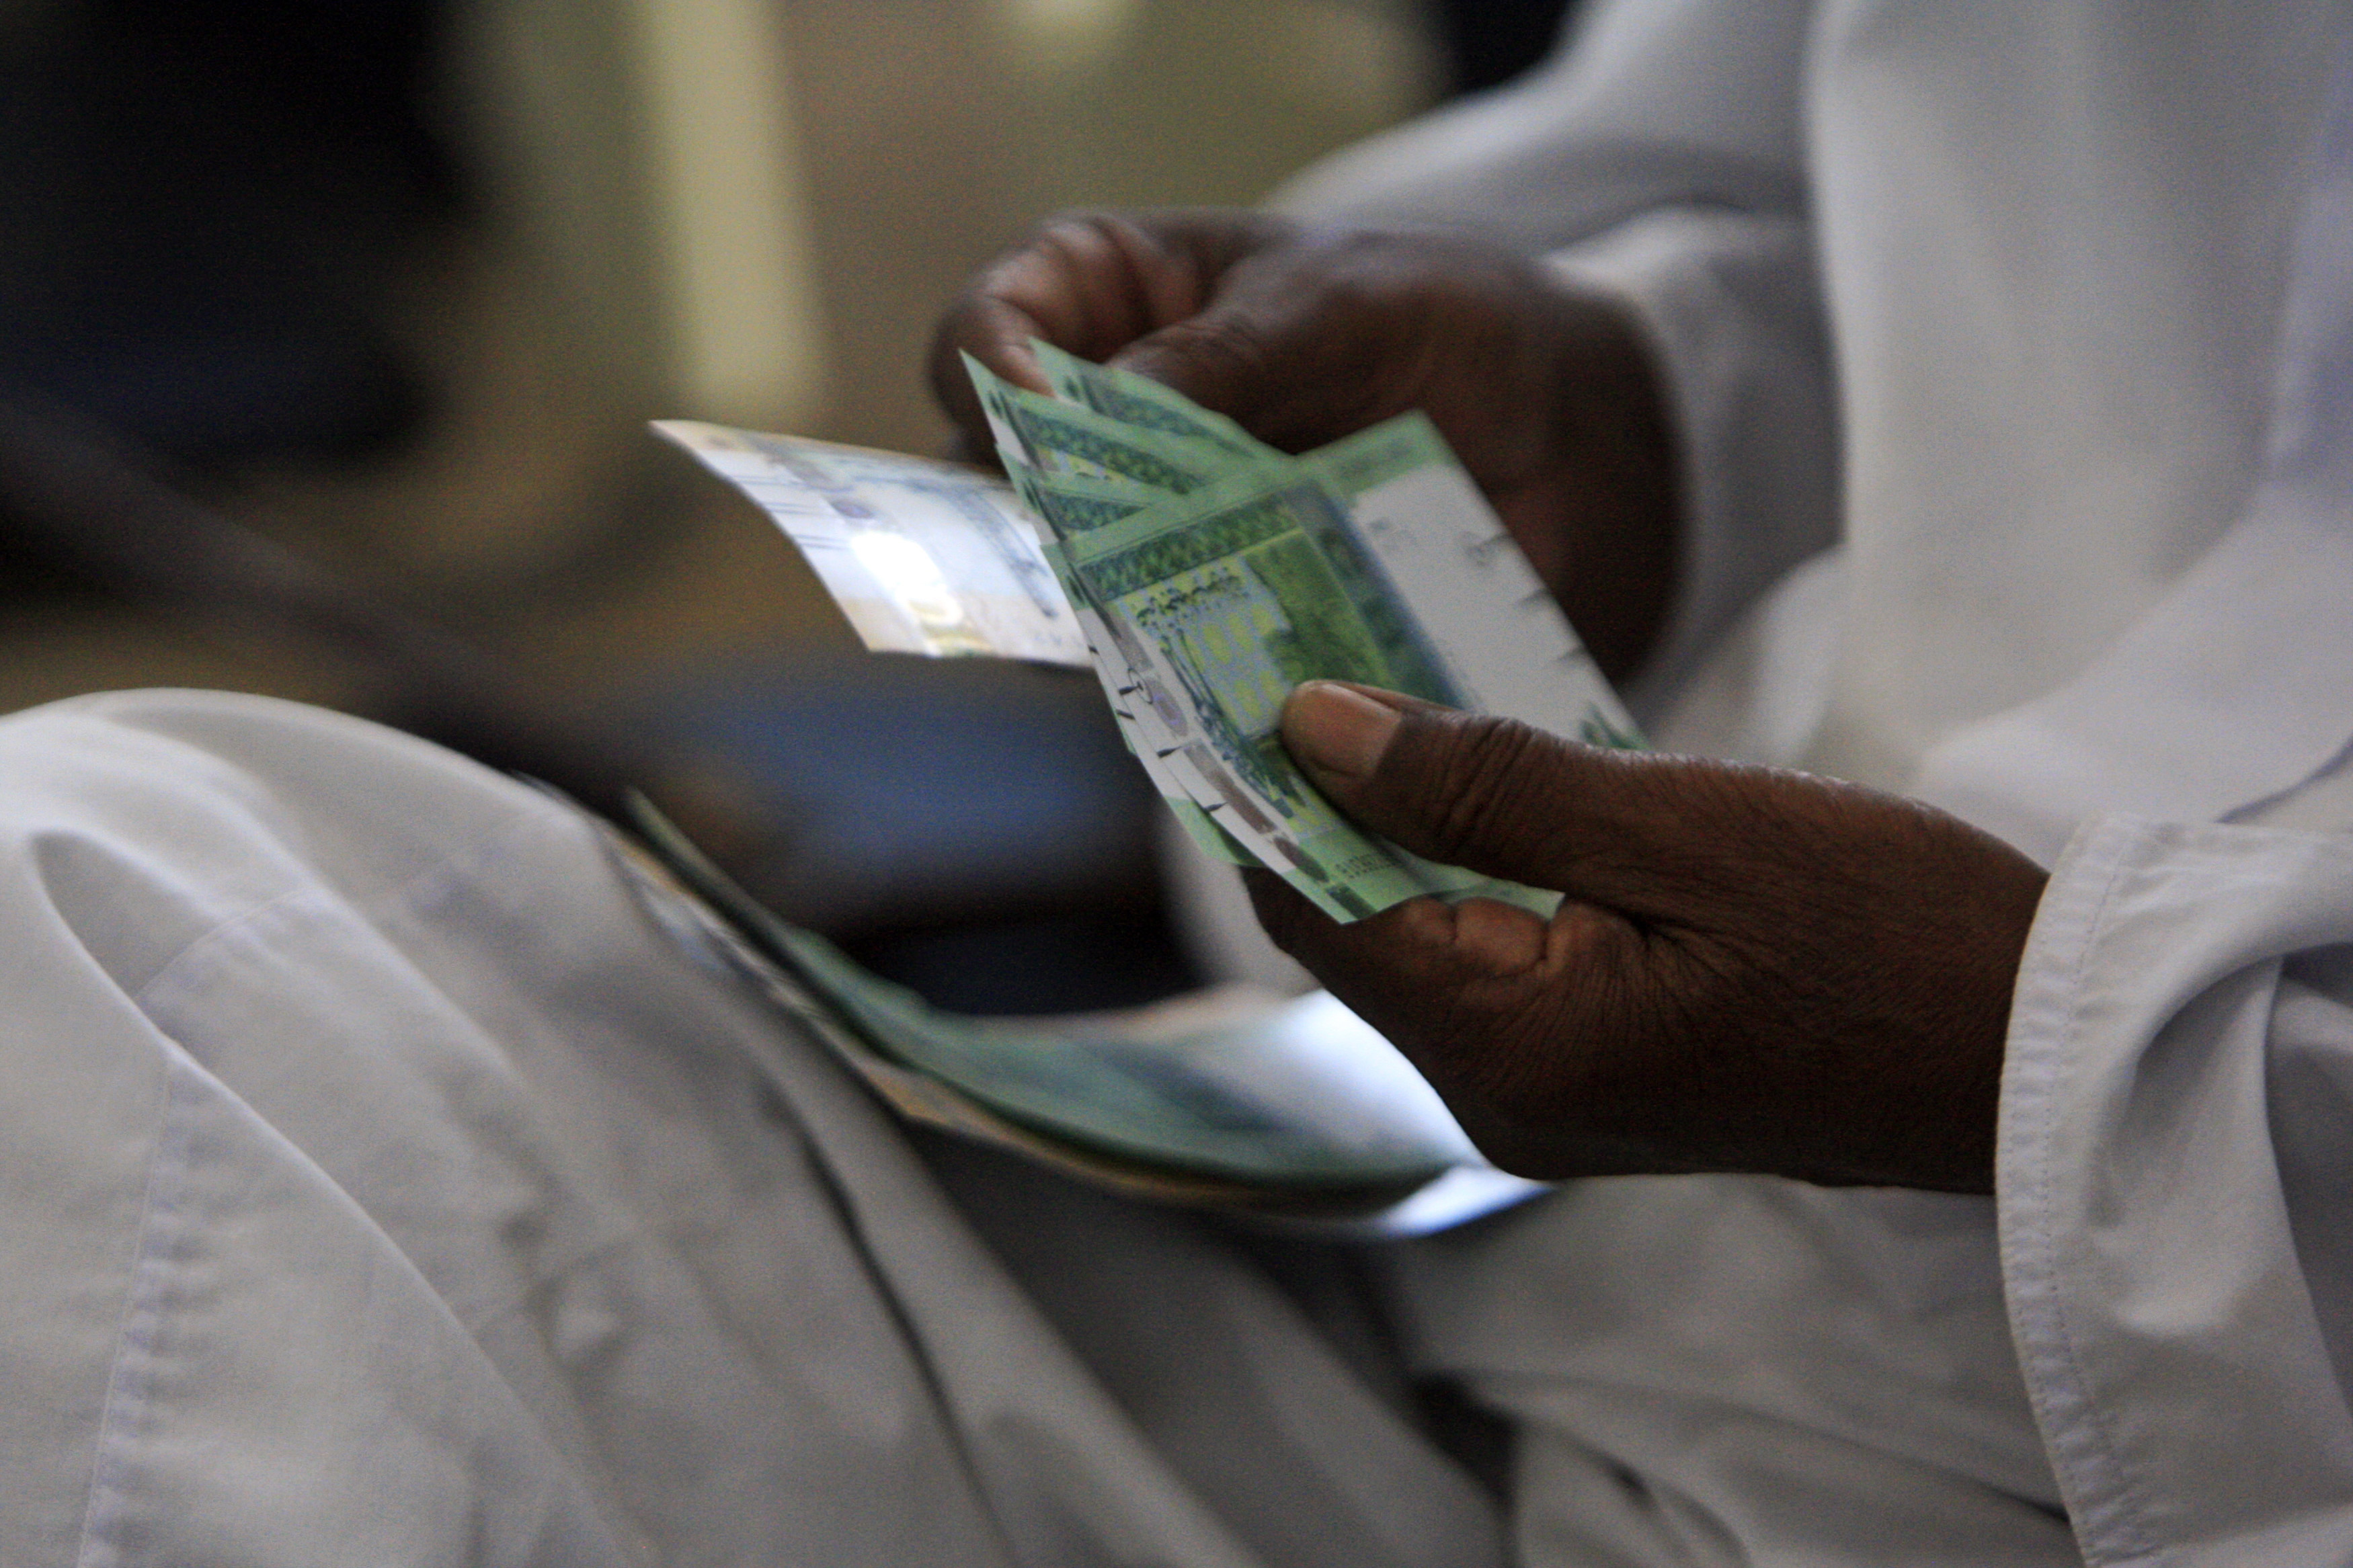 A man counts notes after receiving the new Sudanese currency at a central bank branch in Khartoum July 24, 2011. Sudan on Sunday started circulating its new currency, the central bank said, days after South Sudan started rolling out a currency of its own. REUTERS/ Mohamed Nureldin Abdallah/File Photo